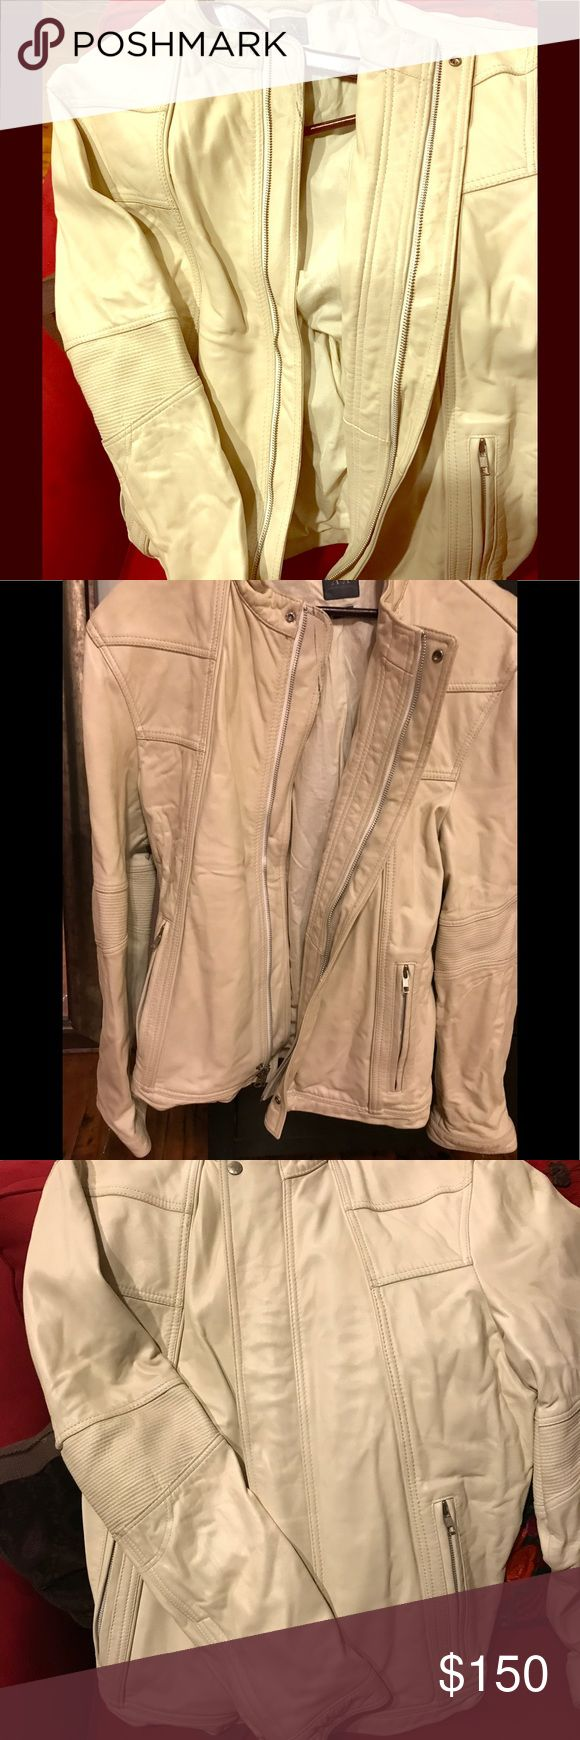 White Armani Leather Moto Jacket XL men's/women's Check out this super stylish white XL Moto Jacket From Armani Exchange. The leather is so soft and the Jacket can be for men or women. Just need the right person to rock this look. There's a small black mark near collar but should be easily.cleaned. Can't wait to see the Jacket on one of my posh mark peeps. 150 or make an offer. A/X Armani Exchange Jackets & Coats Military & Field